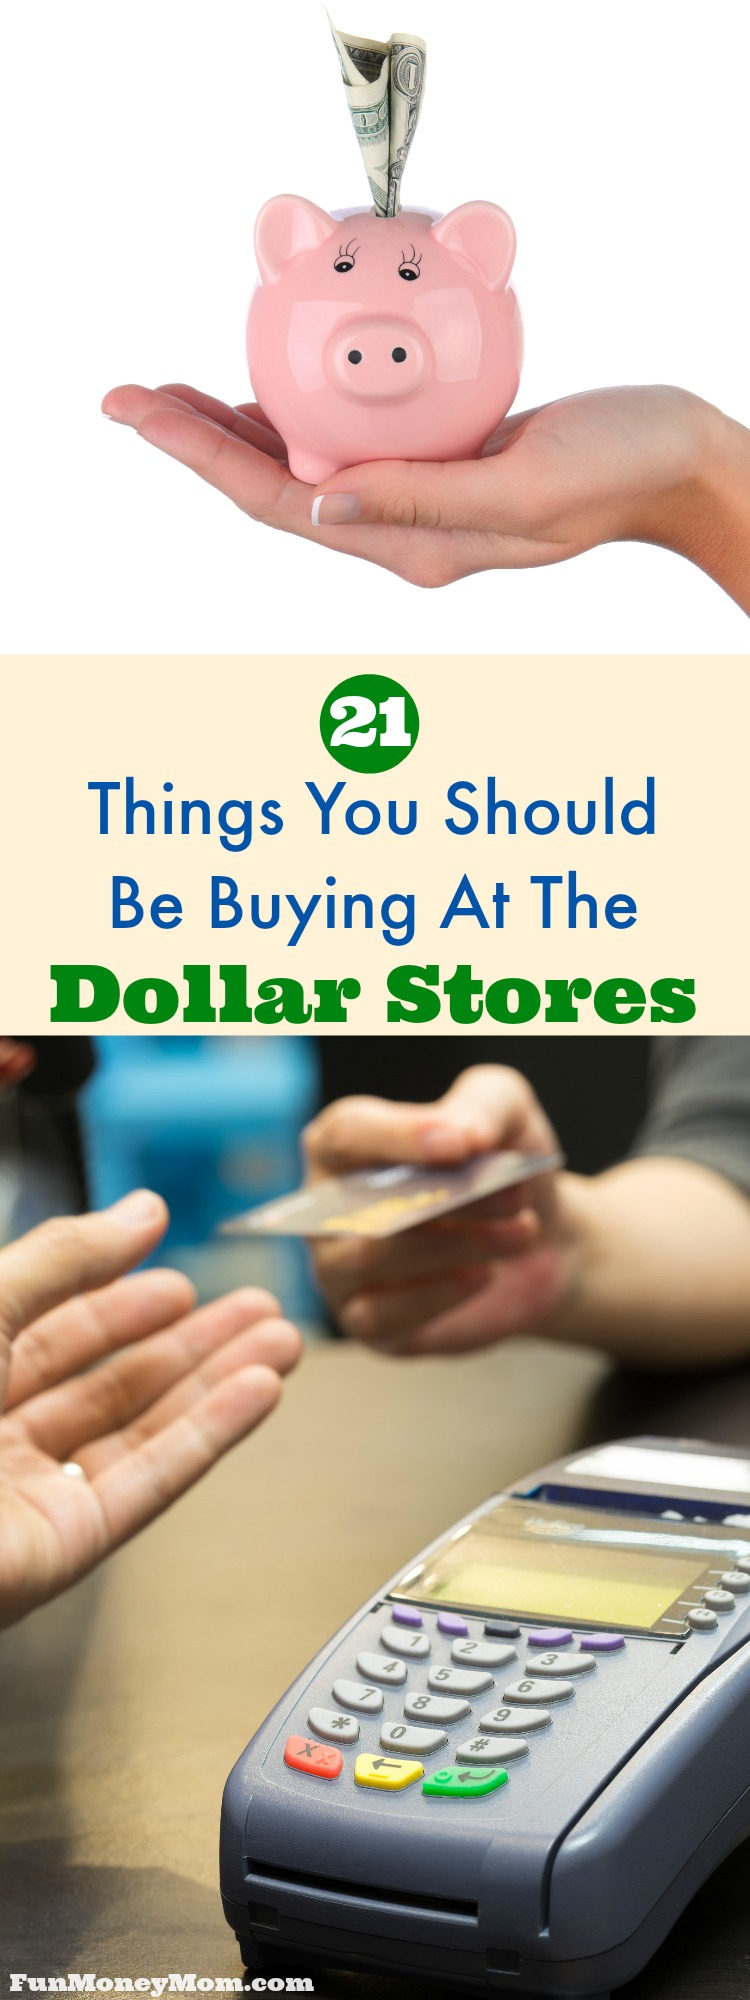 Trying to save money? The dollar stores are some of the best places to shop if you're on a budget and these are the 21 things that you definitely need to be buying!